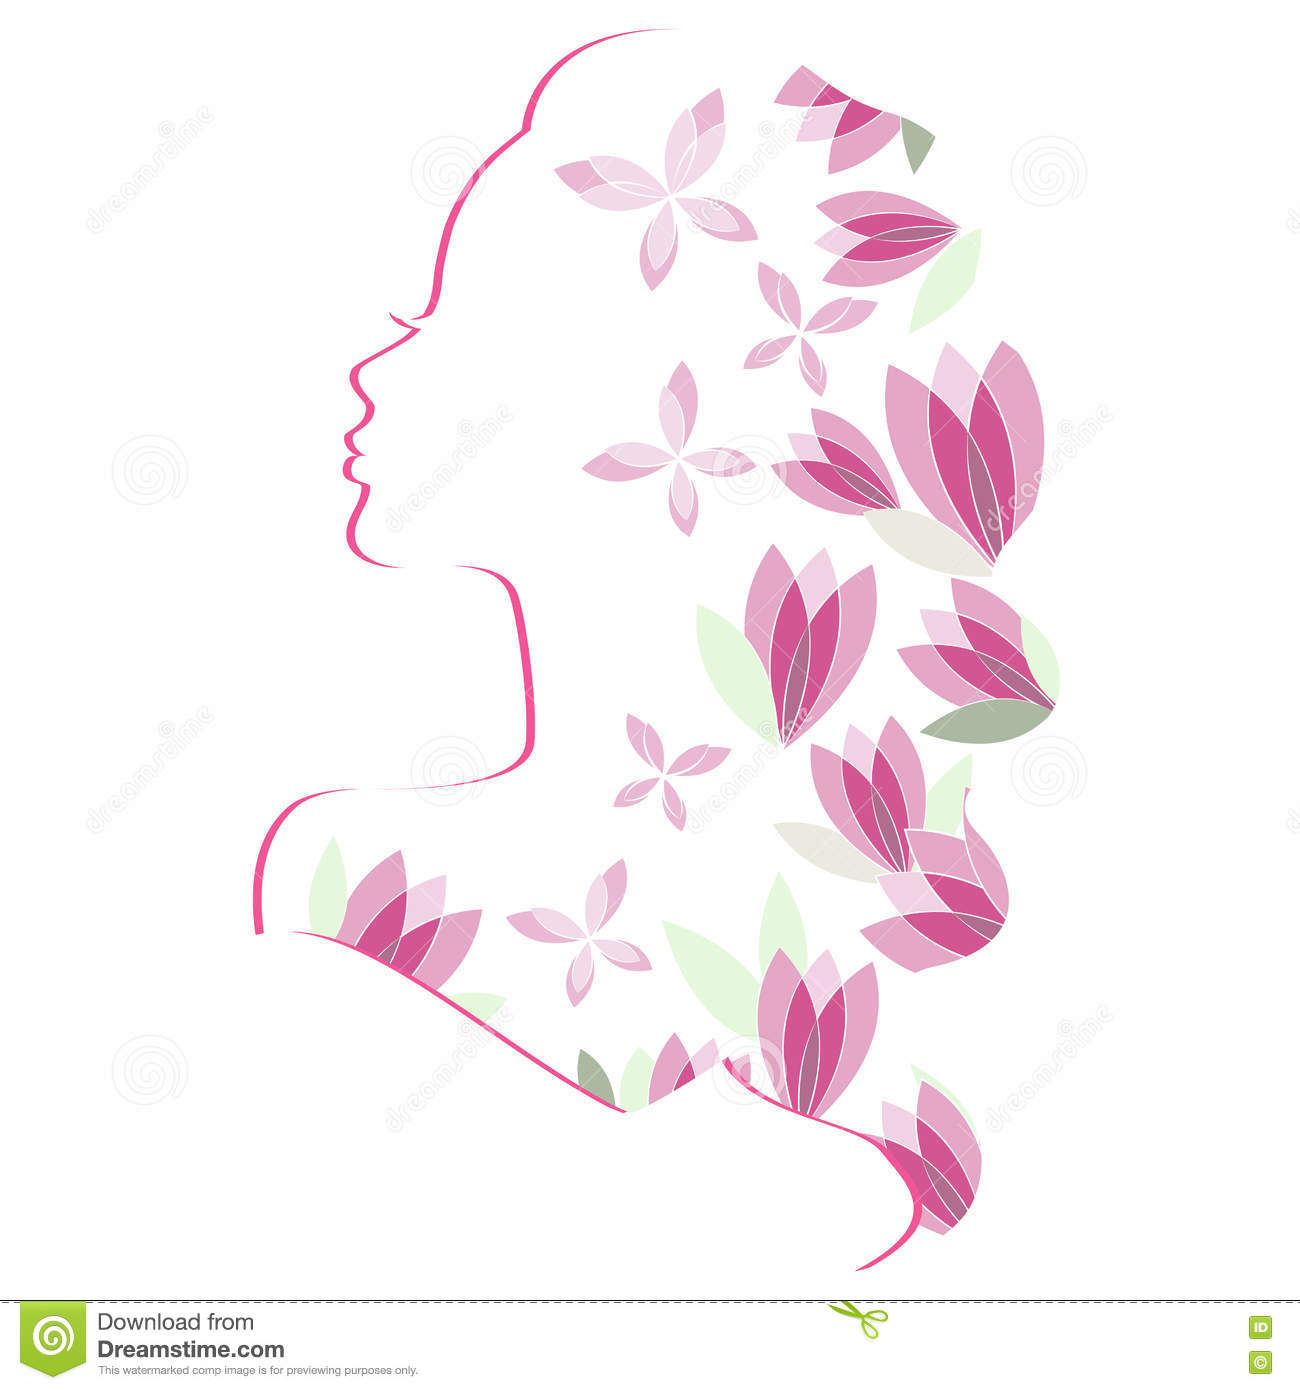 Woman silhouette with flowers